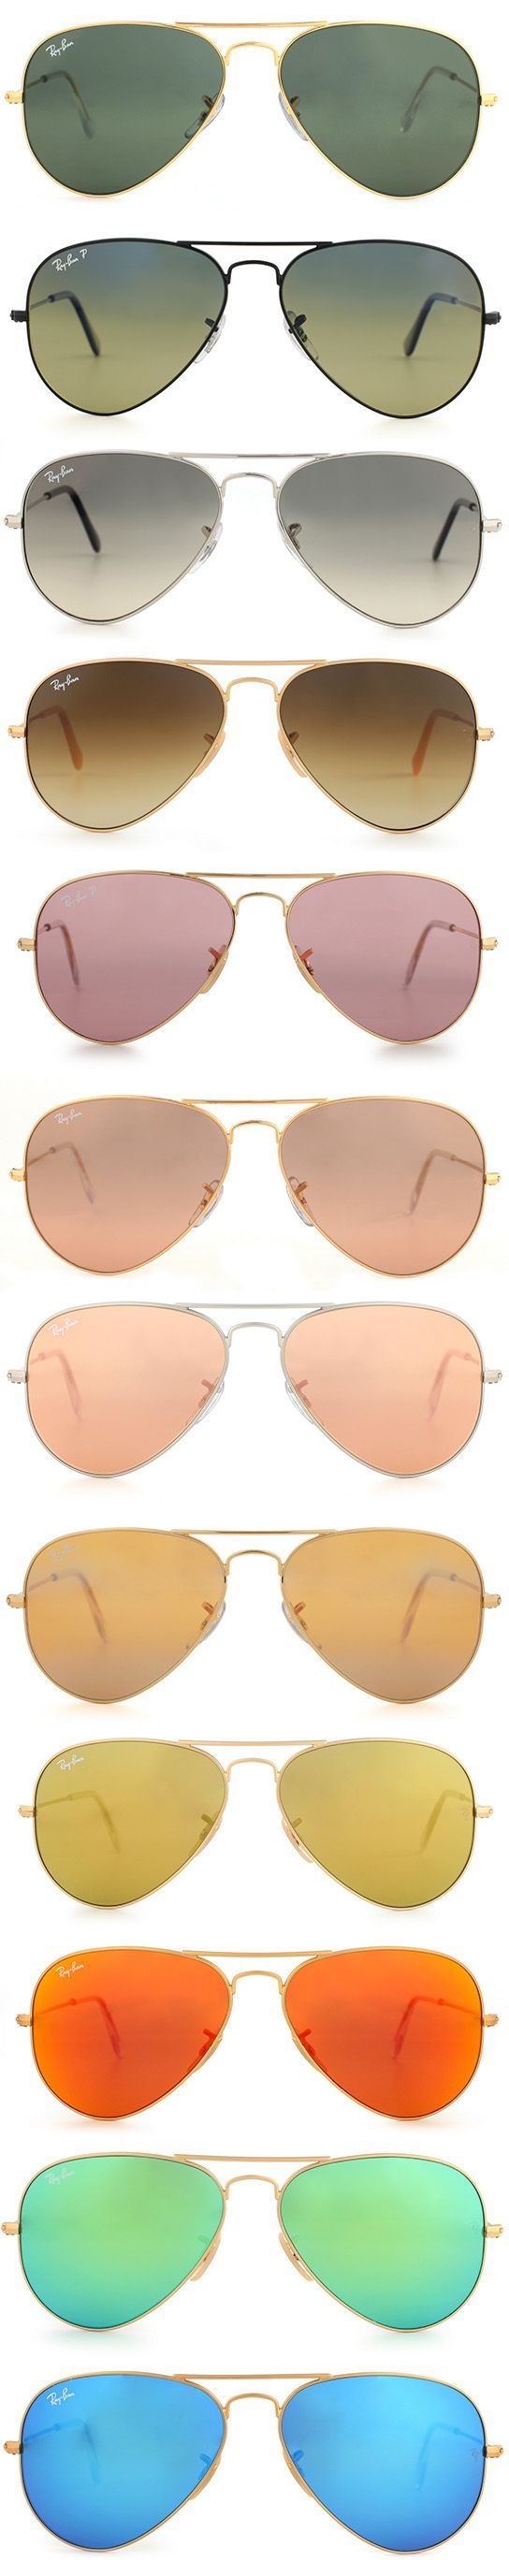 cheap sunglasses outlet  1000+ ideas about Sunglasses Outlet on Pinterest